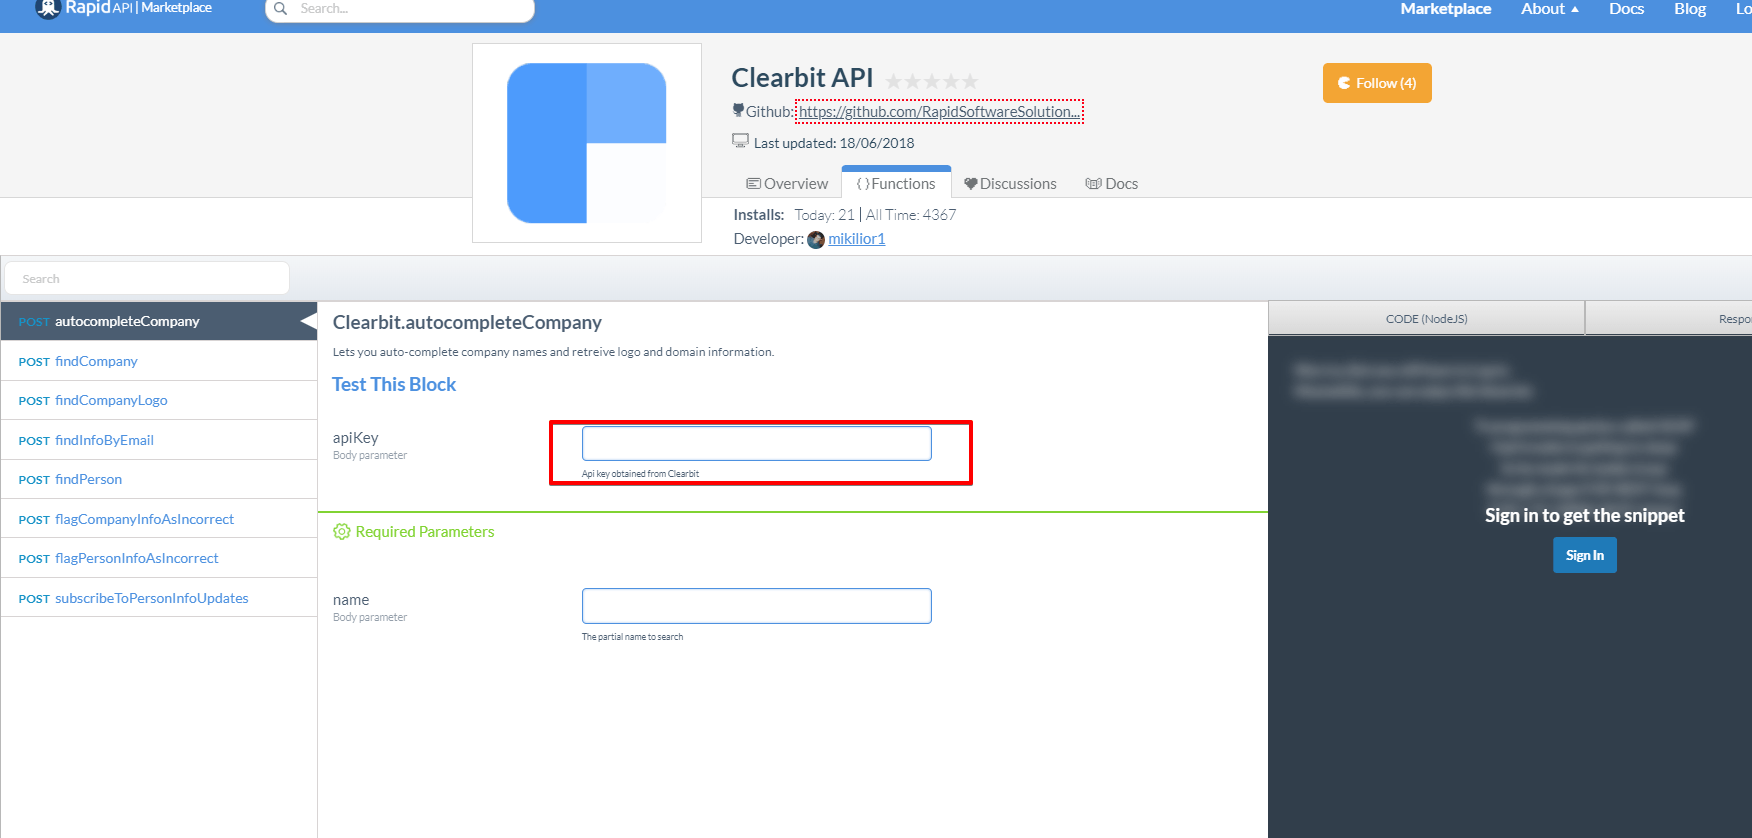 Clearbit API Key RapidAPI